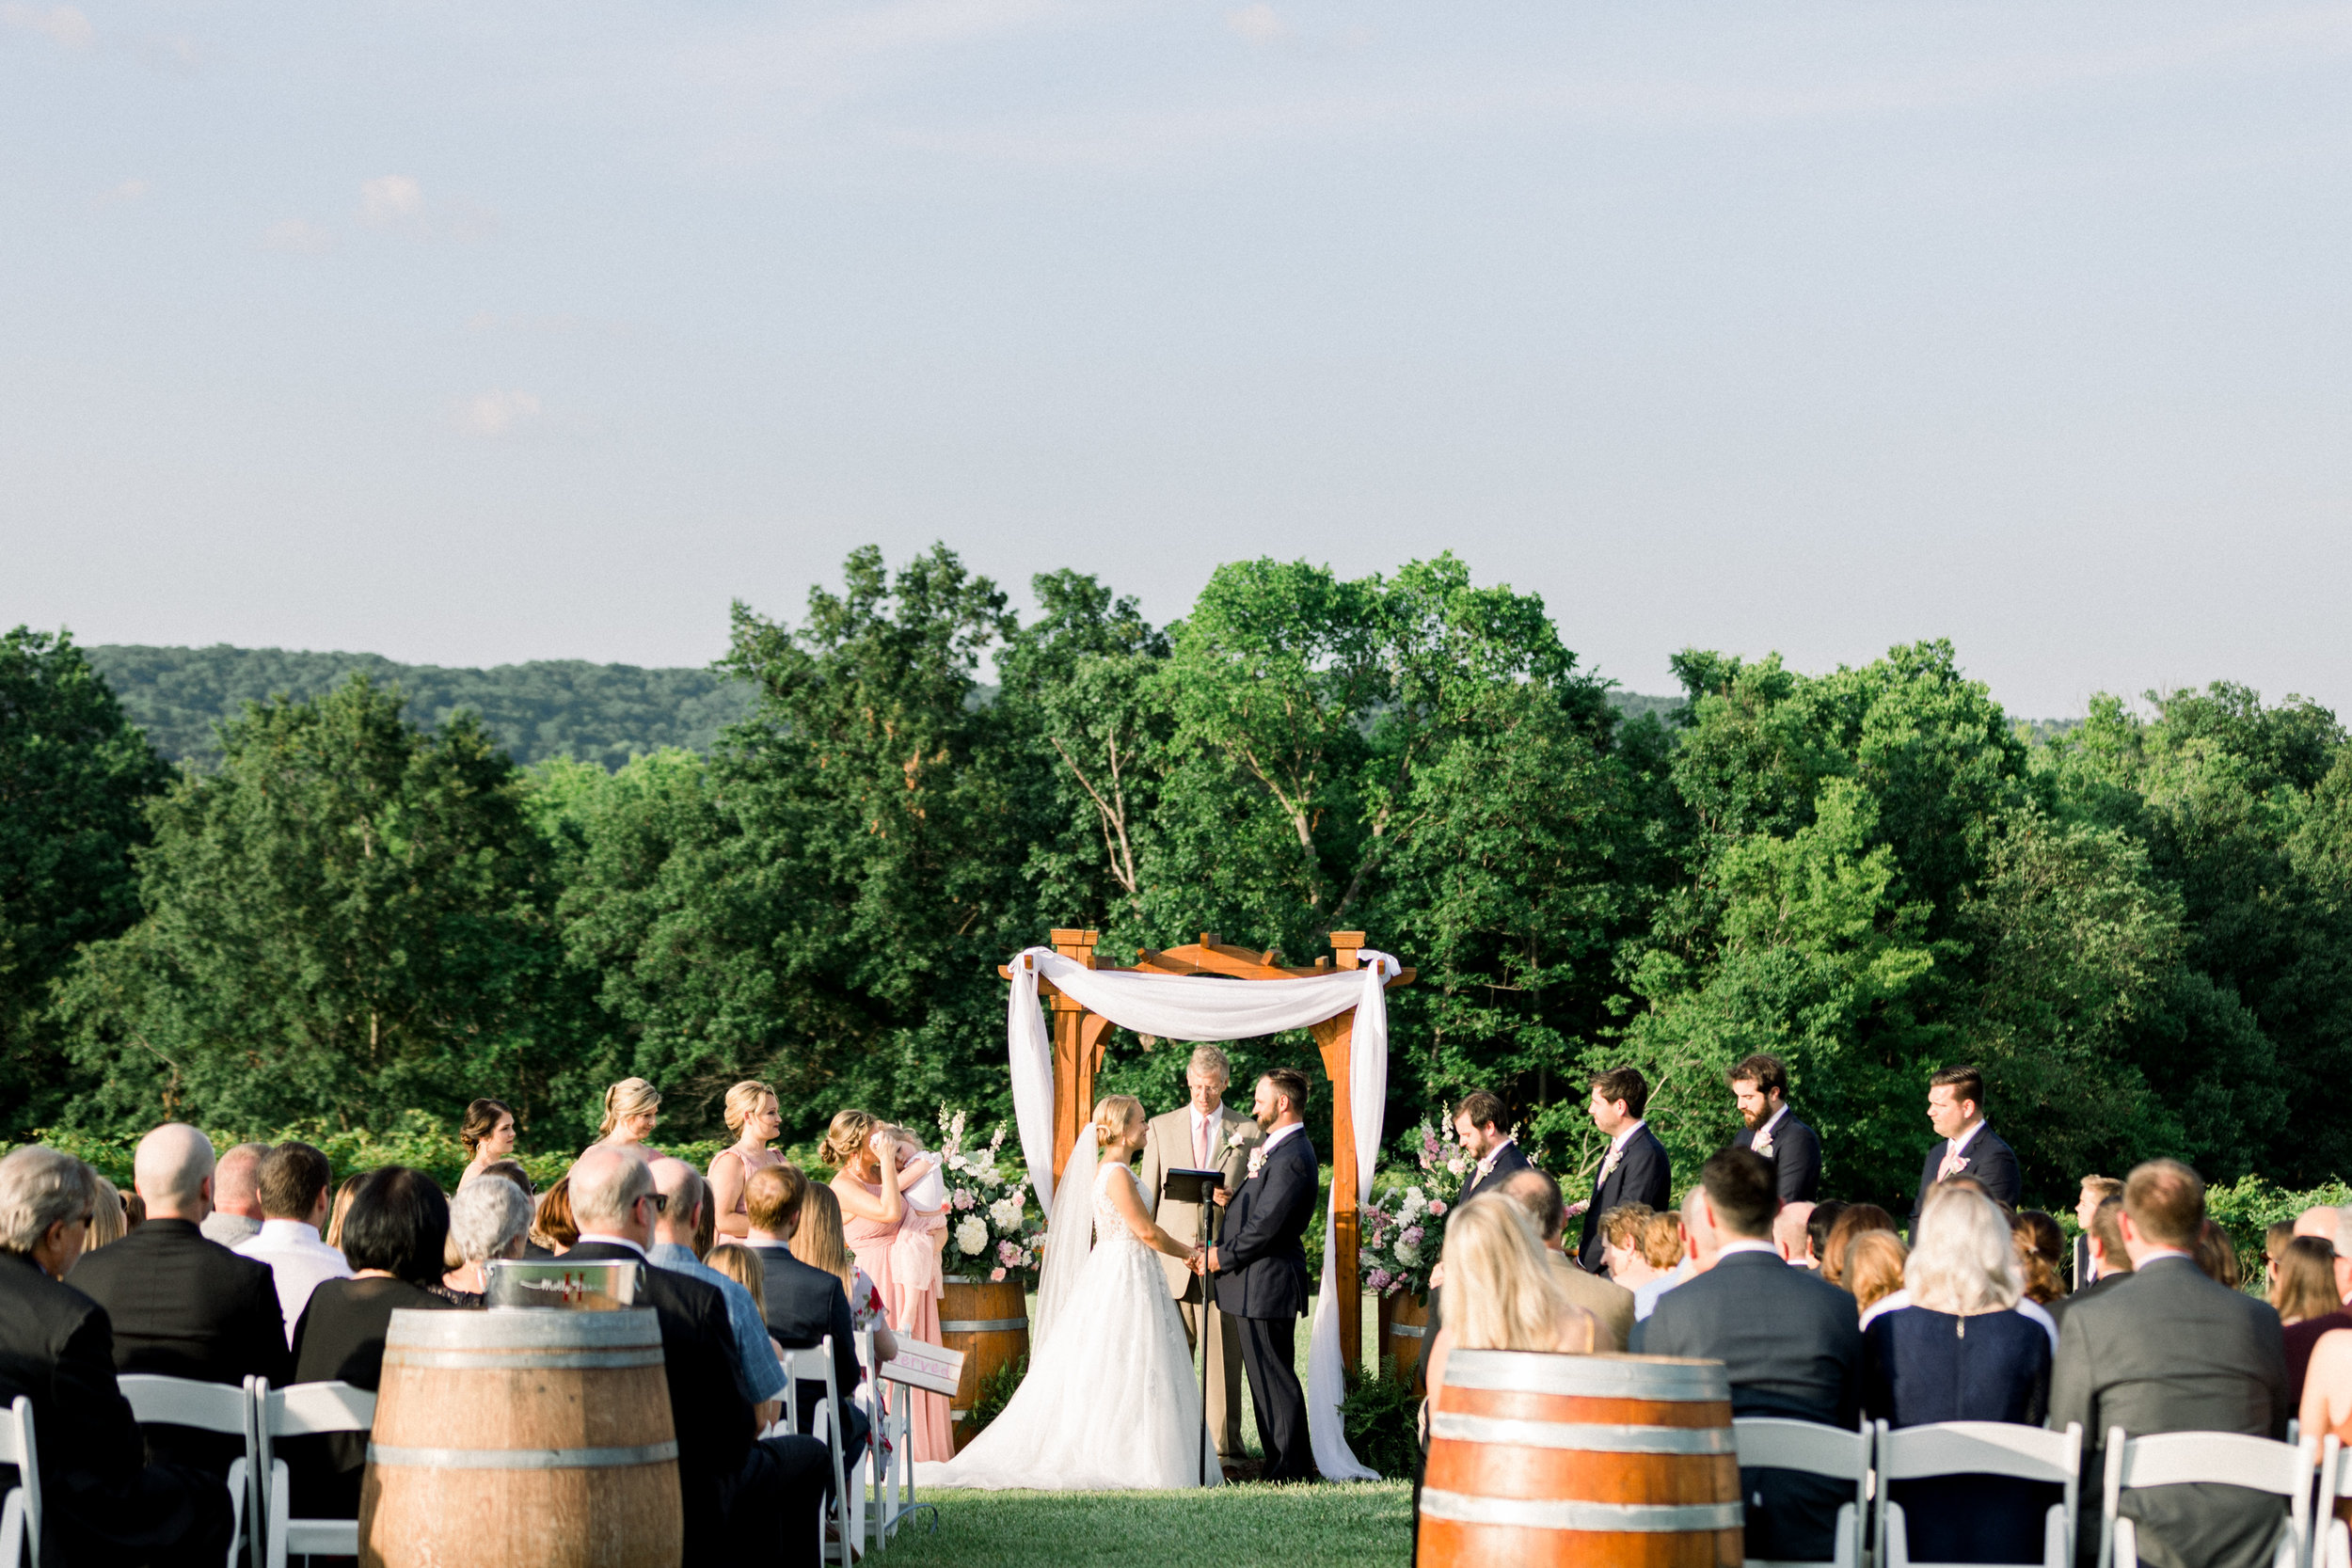 Molly + Dan wedding 6-7-19 (588 of 916).jpg